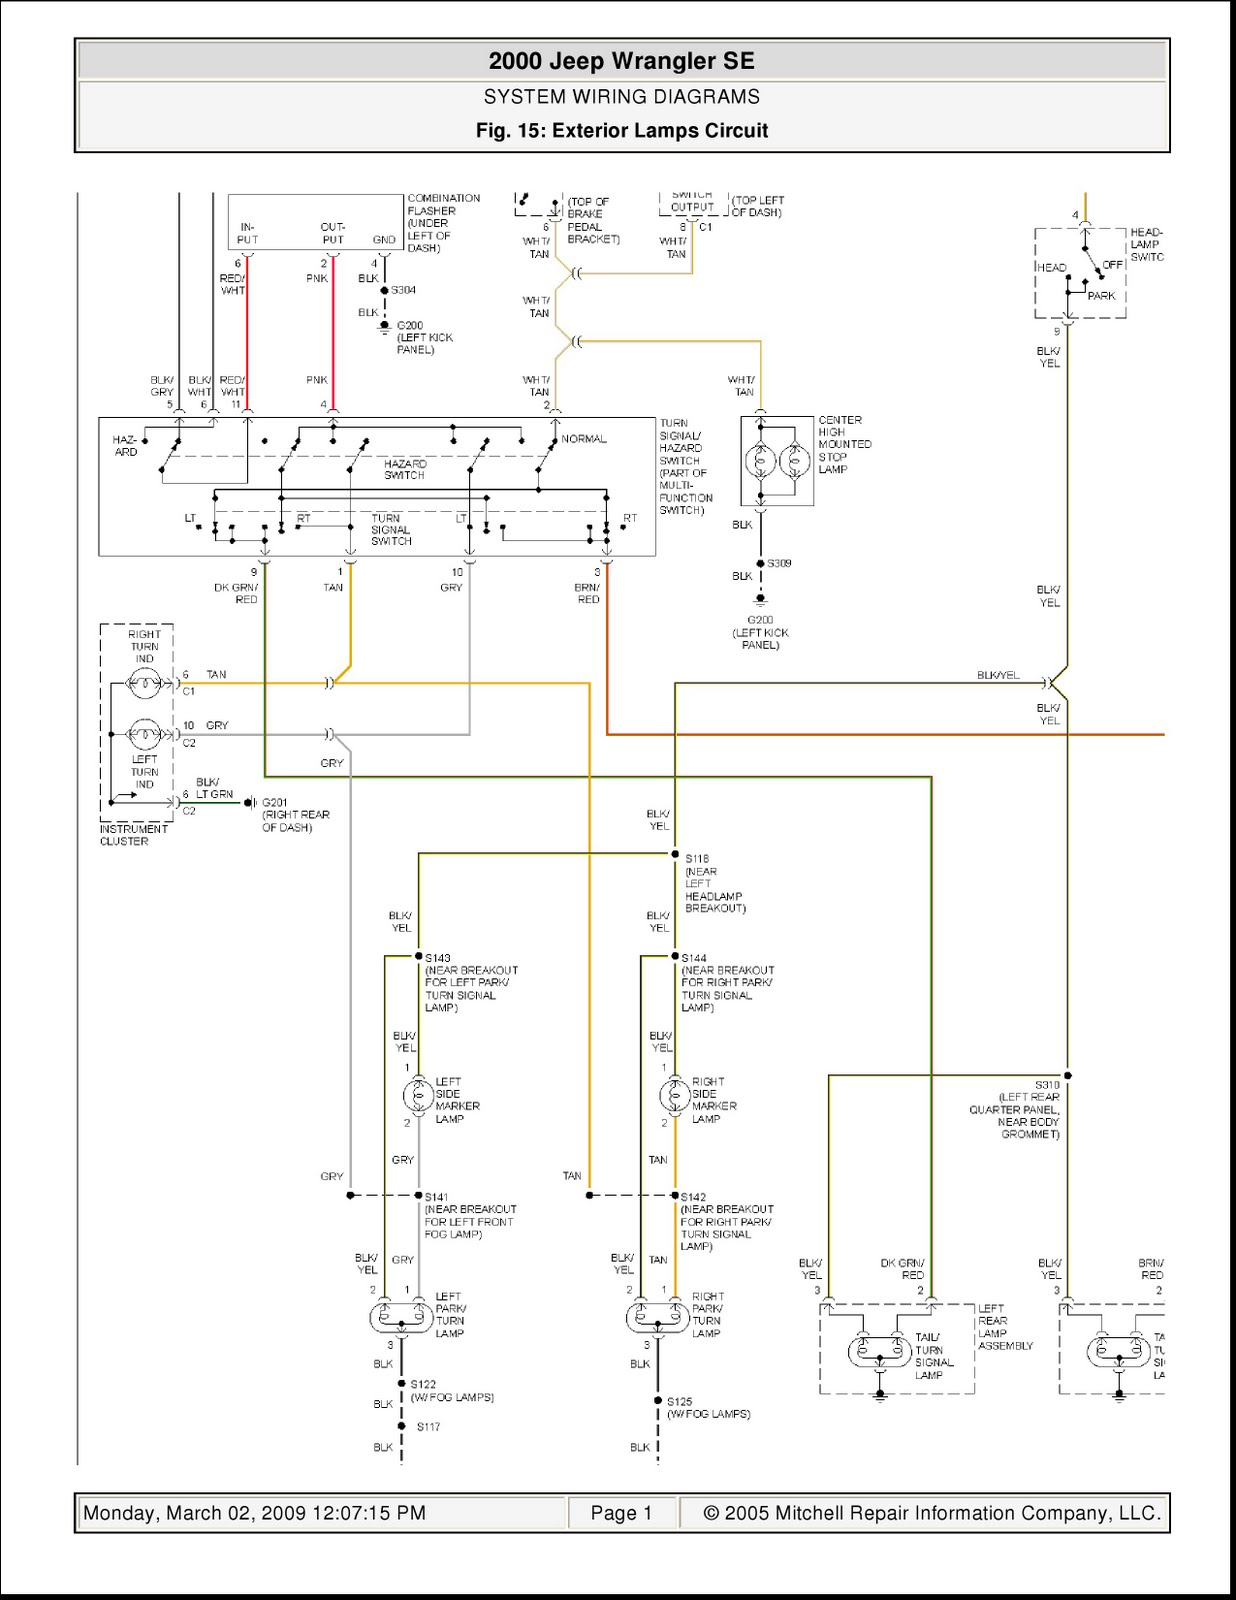 1989 Jeep Comanche Wiring Diagram Database | Wiring Collection